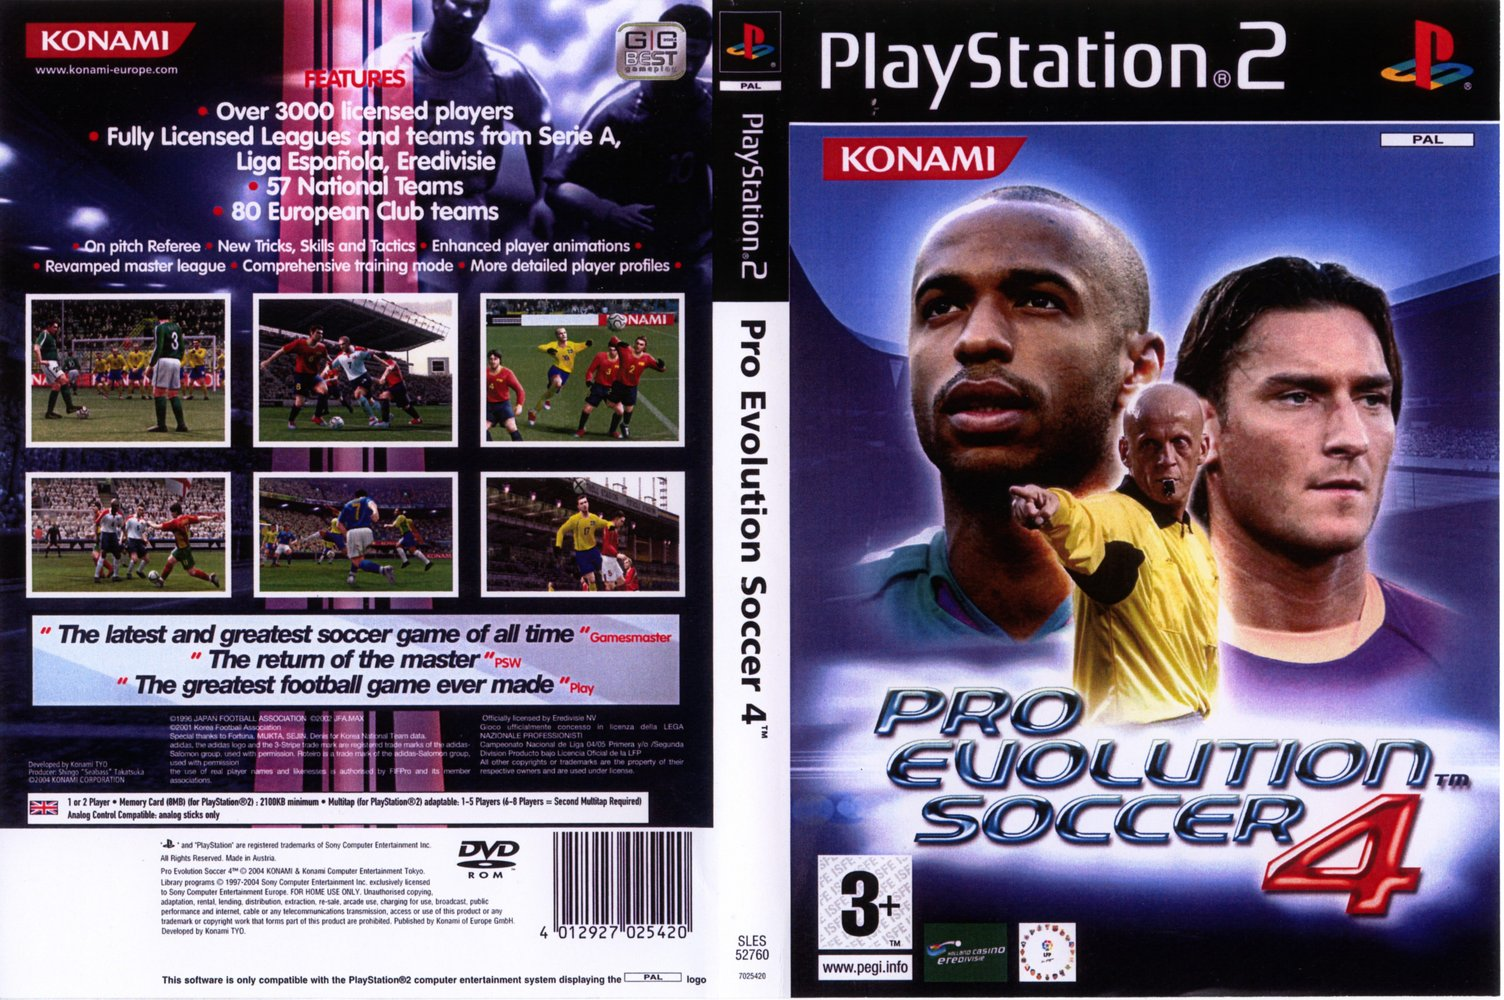 Pro Evolution Soccer 4 (Europe) (En,Fr,De,Es) (v2 00) ISO